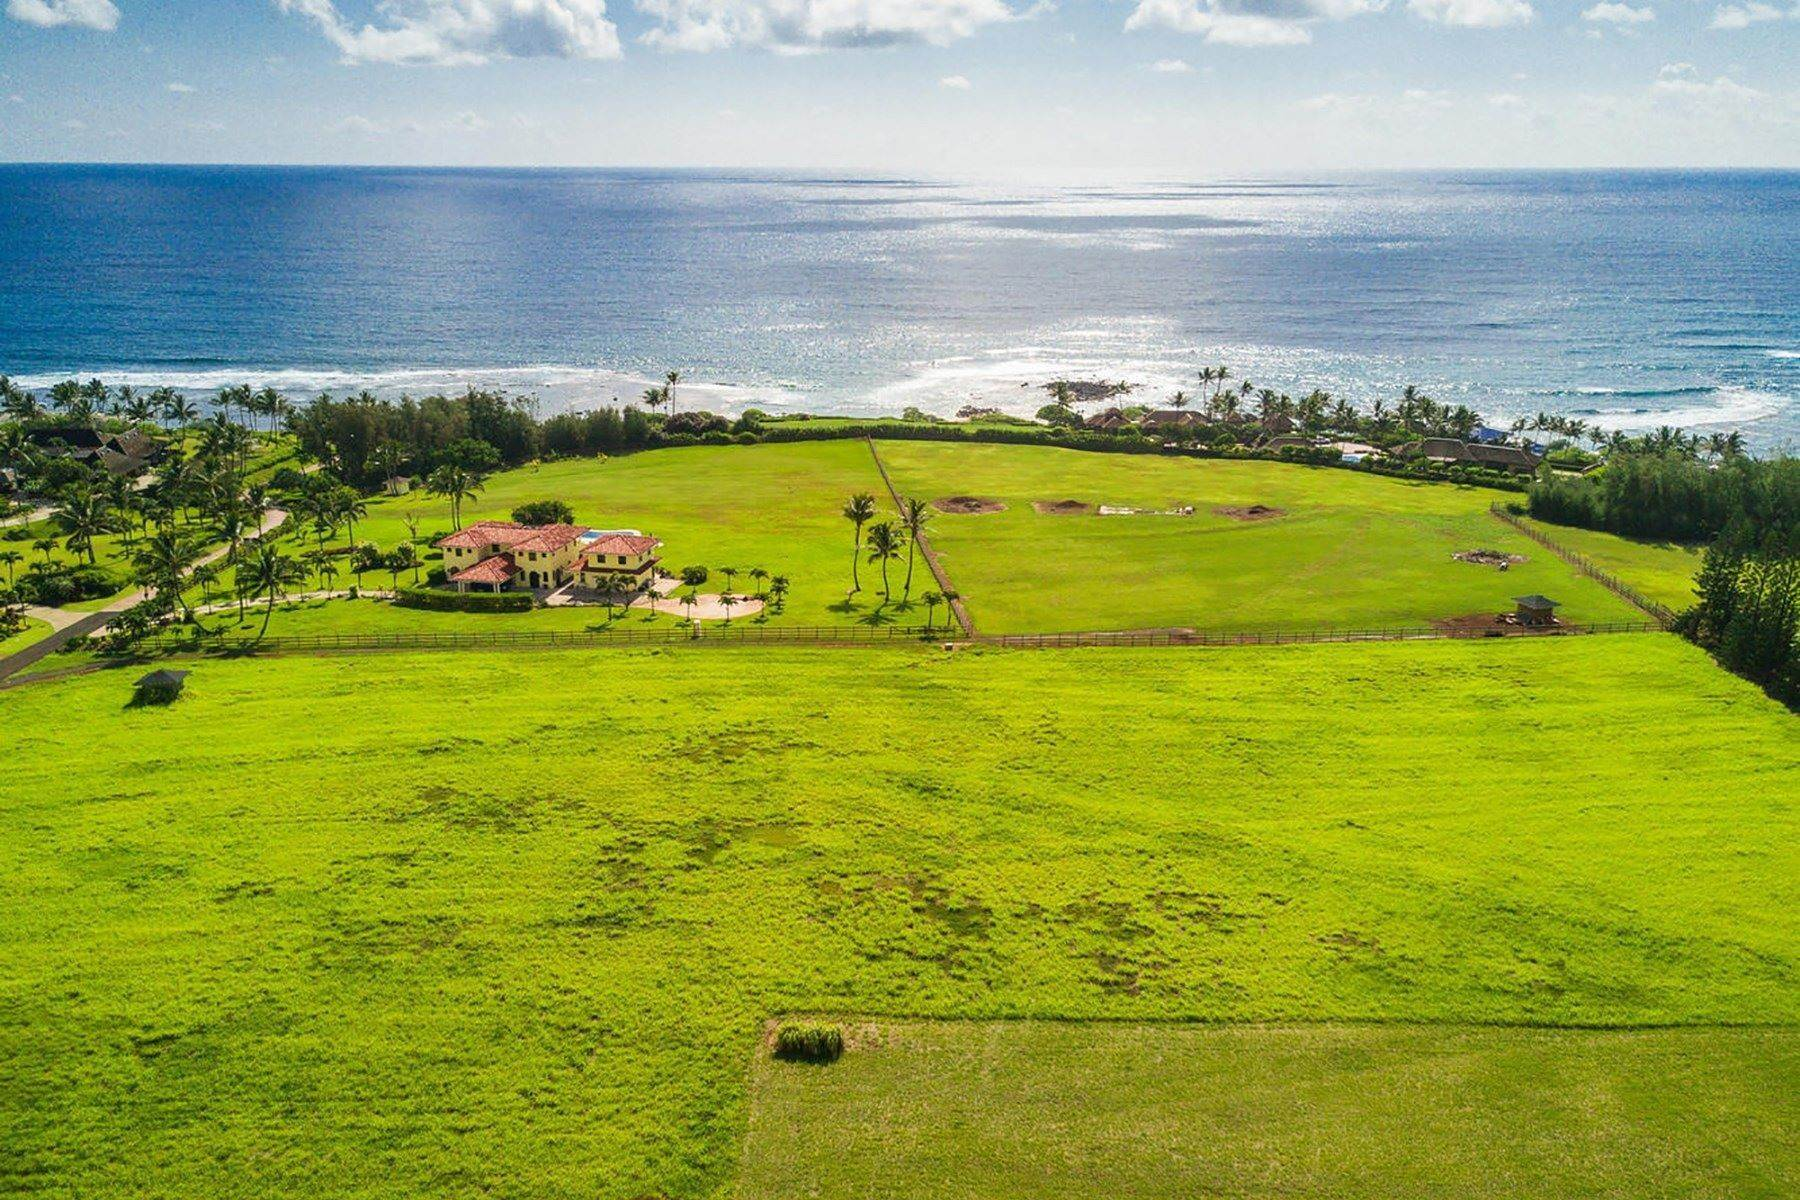 Land for Active at 5310--7C KALALEA VIEW DR #7C ANAHOLA, HI 96703 5310--7C Kalalea View Dr #7C Anahola, Hawaii 96703 United States